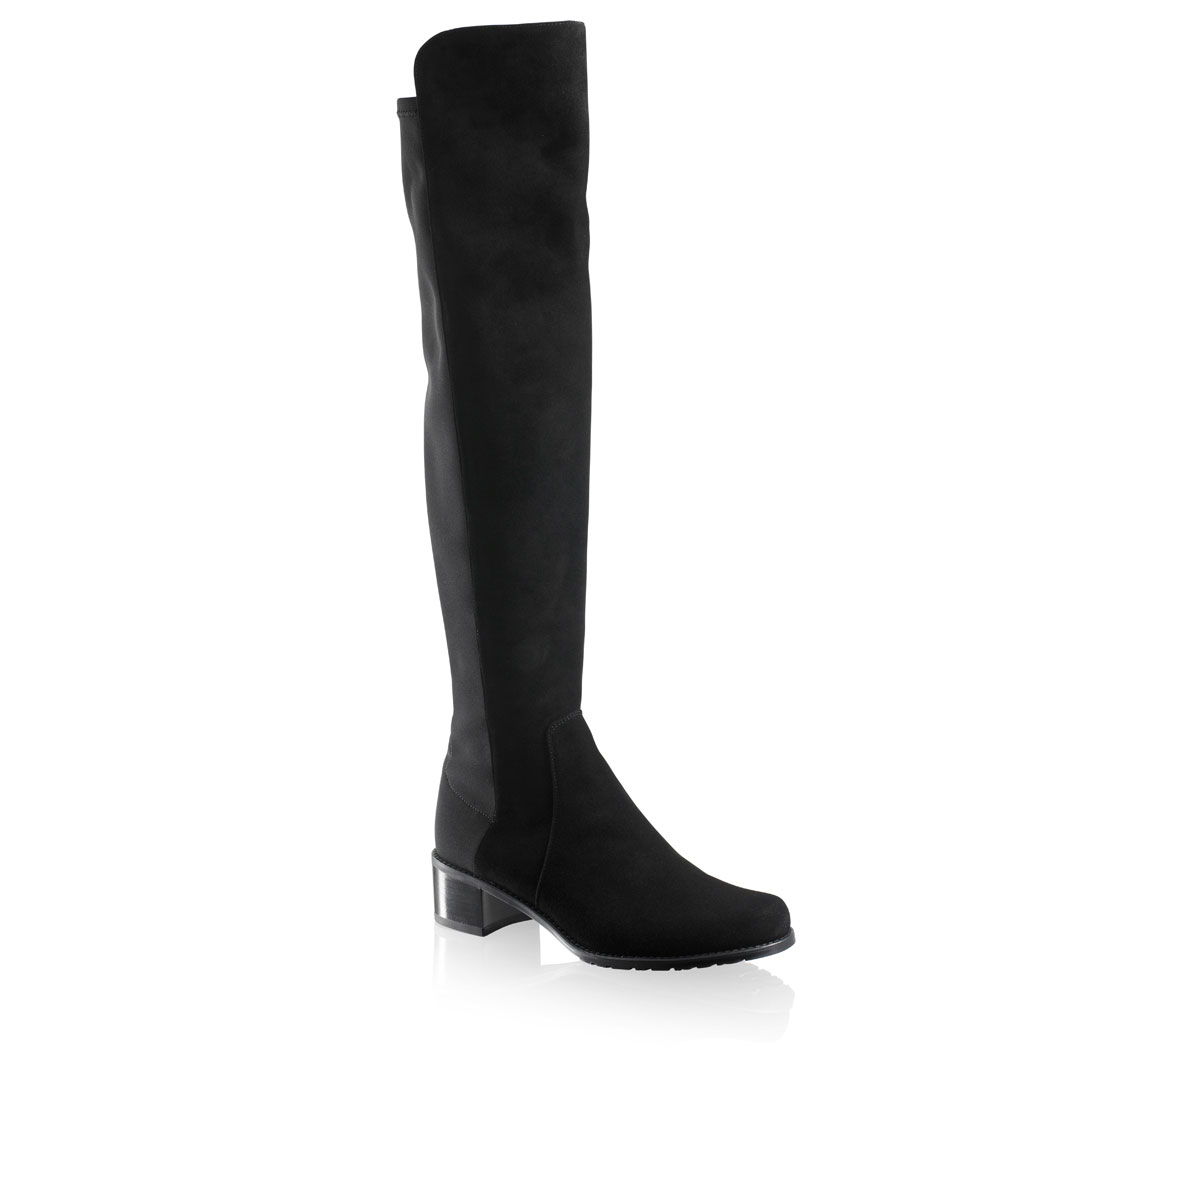 Russell and Bromley RESERVE Over Knee Boot